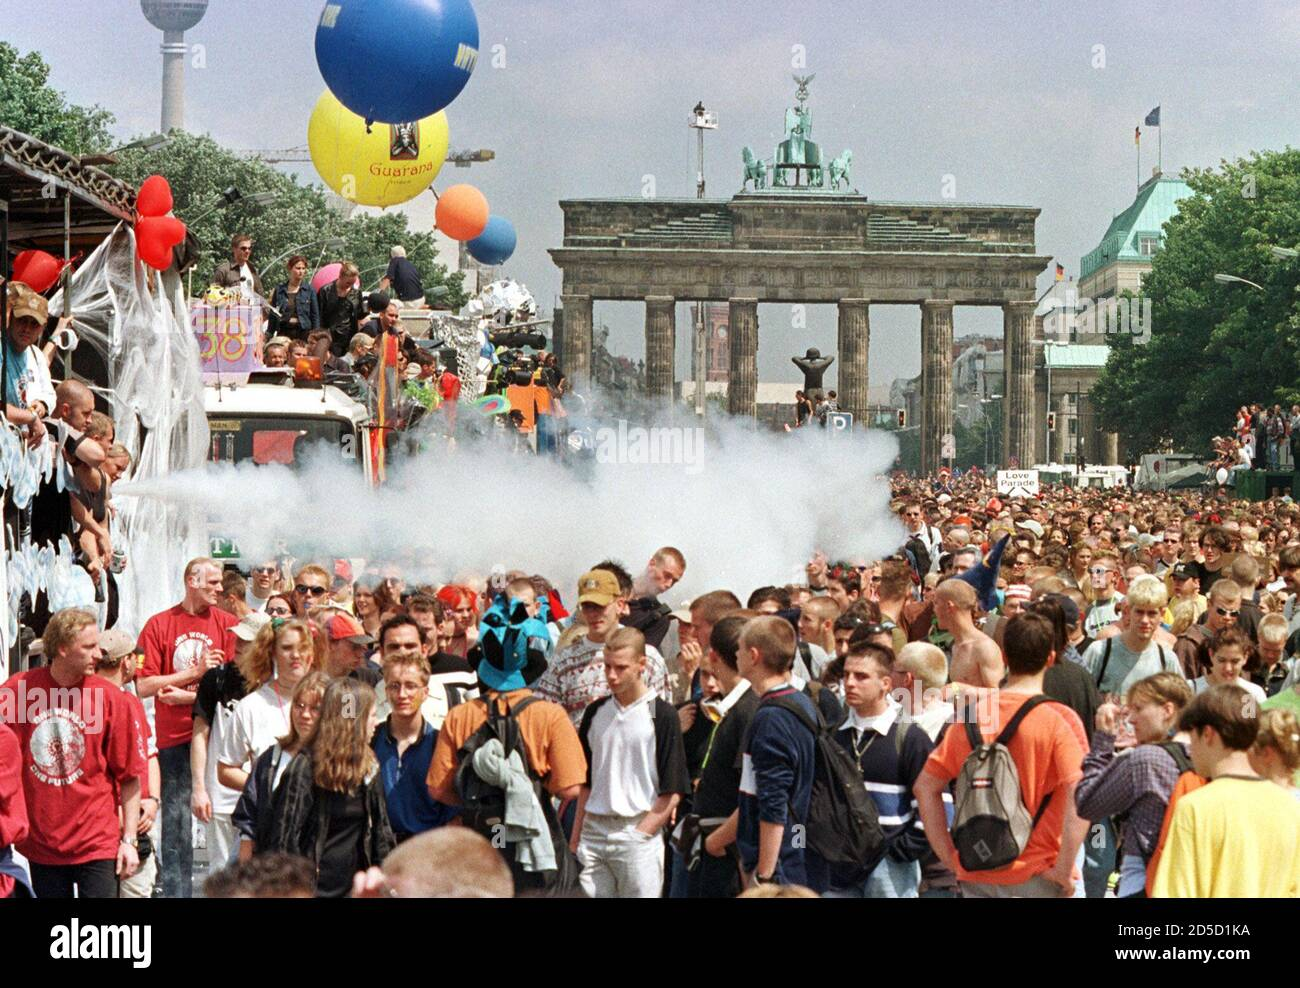 """Revellers at Berlin's famous landmark, the Brandenburg Gate, watch floats make their way through the dense masses during the German capital's annual """"Love Parade"""" techno music fest July 11. Over a million people are expected to attend this year's tenth anniversary street parade with the motto """"One World, One Future"""". Stock Photo"""